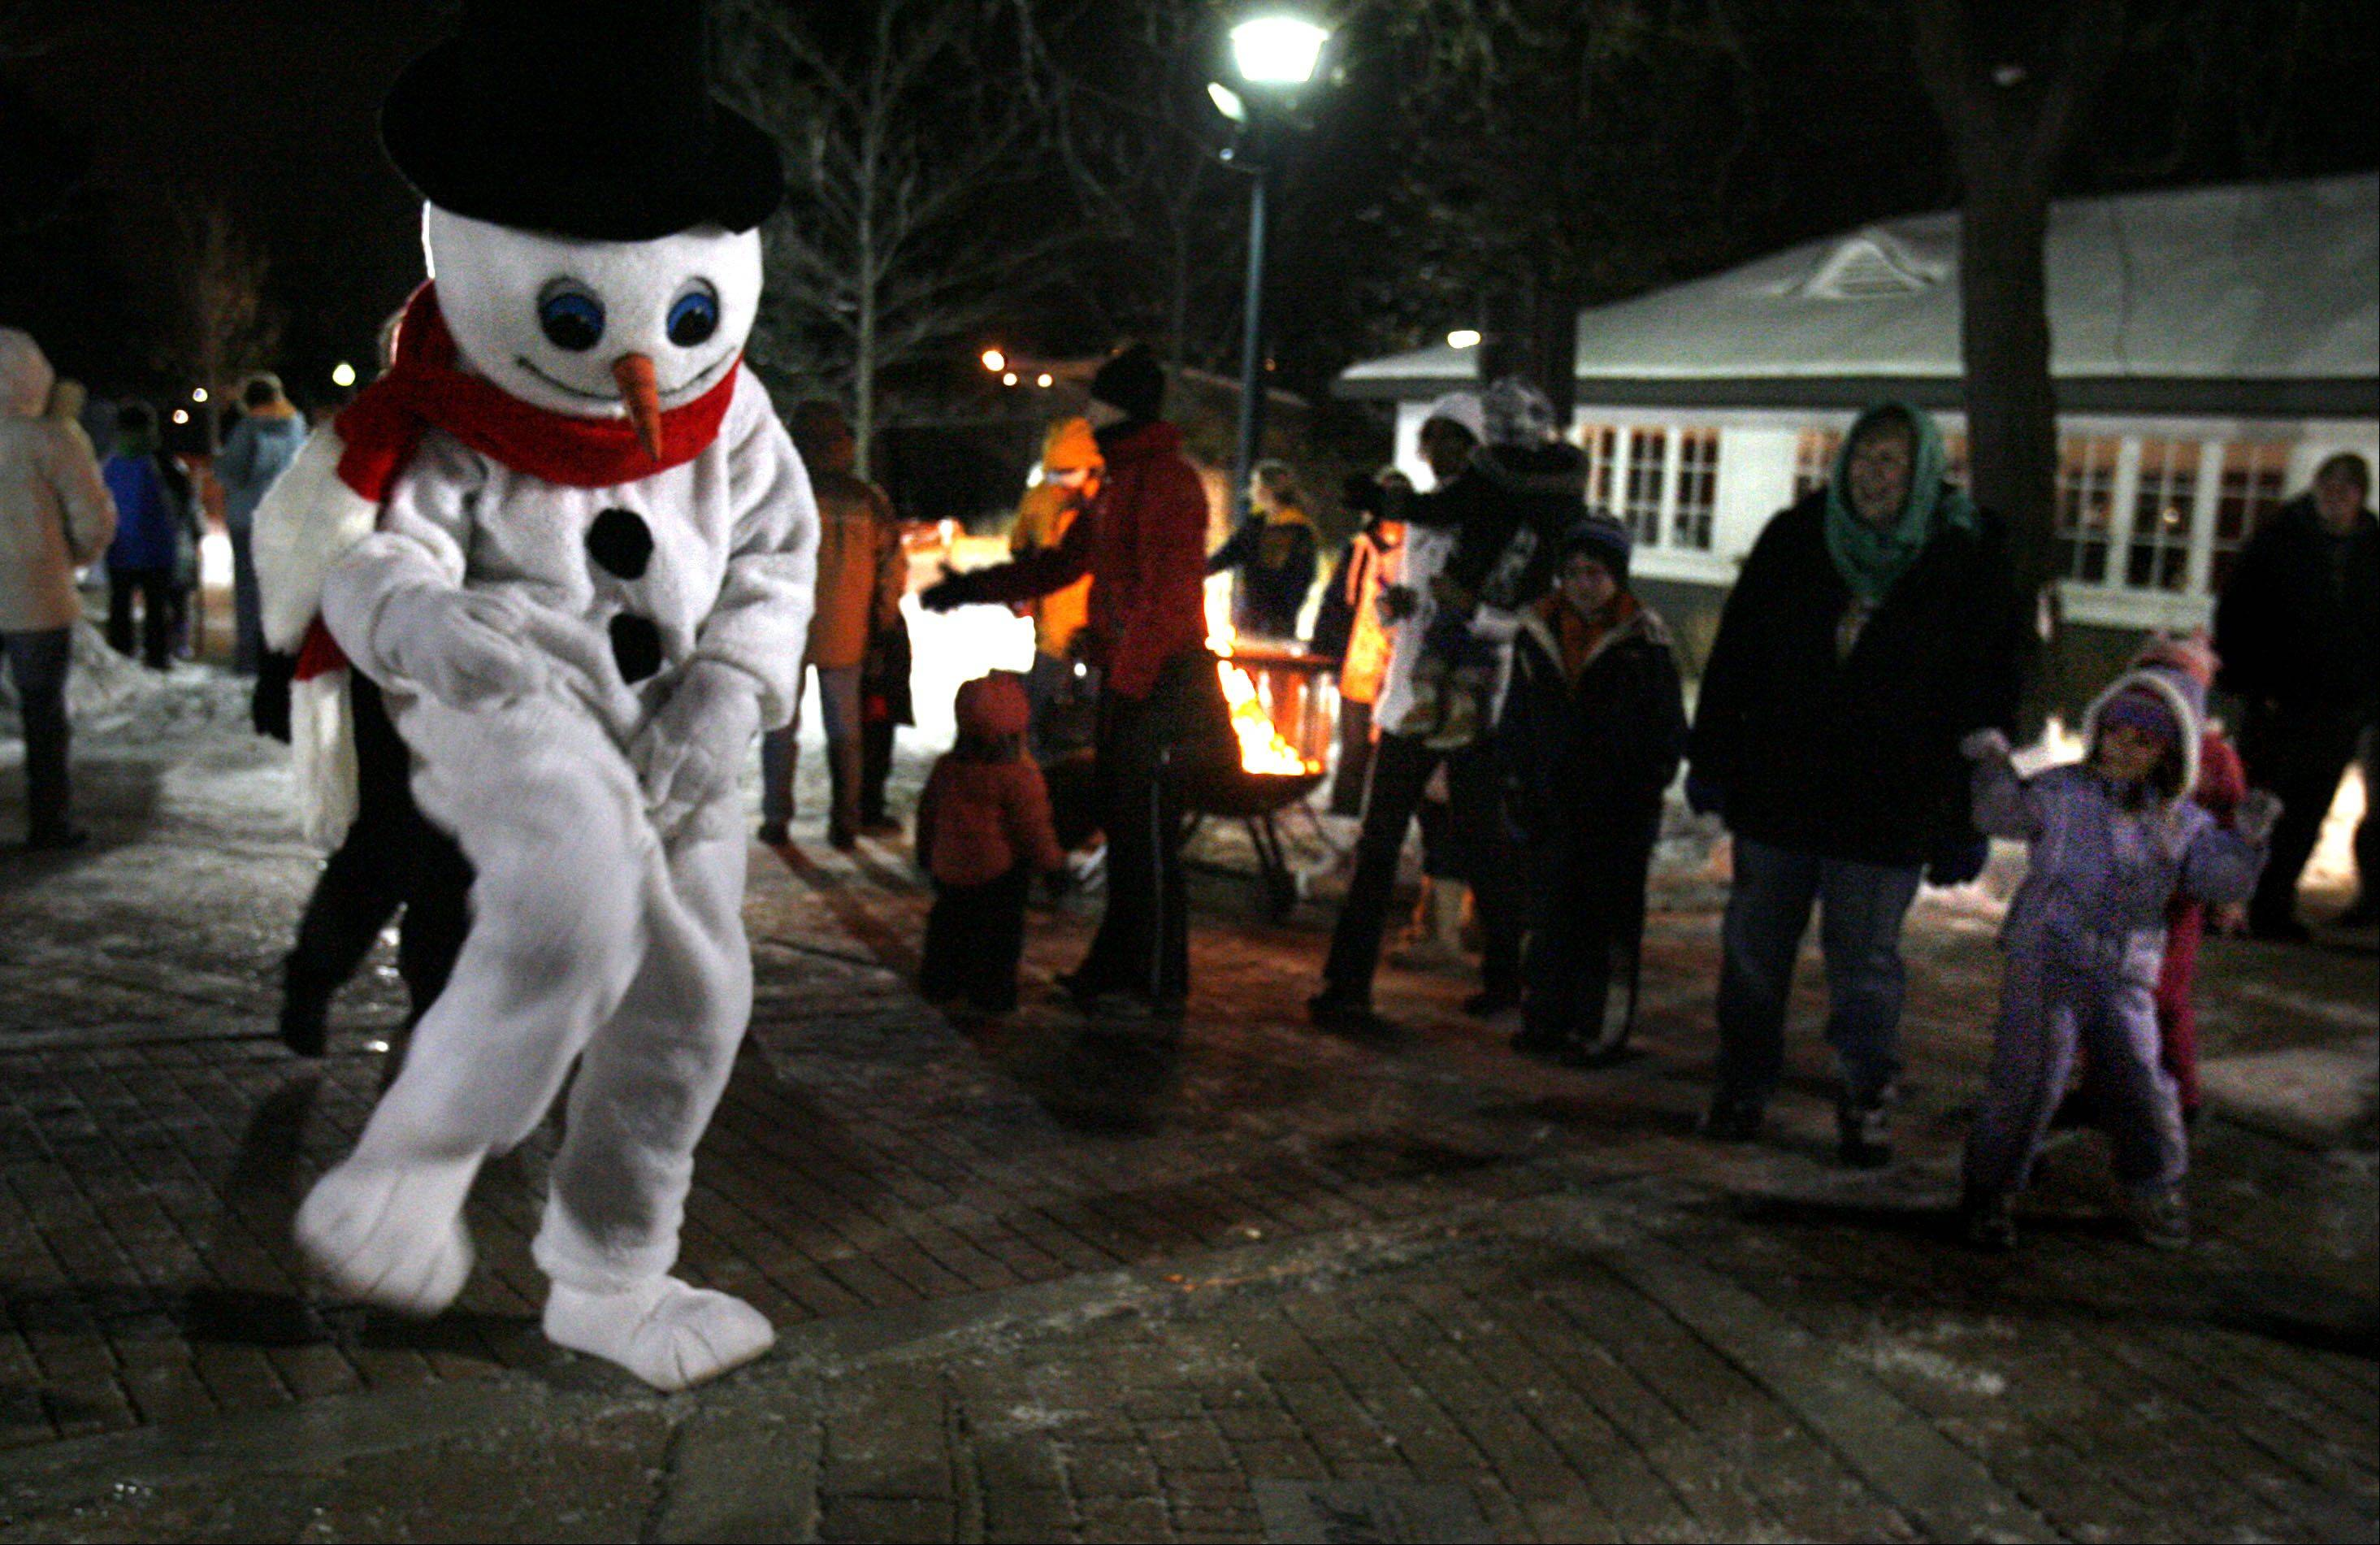 Frosty was spotted dancing at the Frosty Fest at Viking Park in Gurnee.